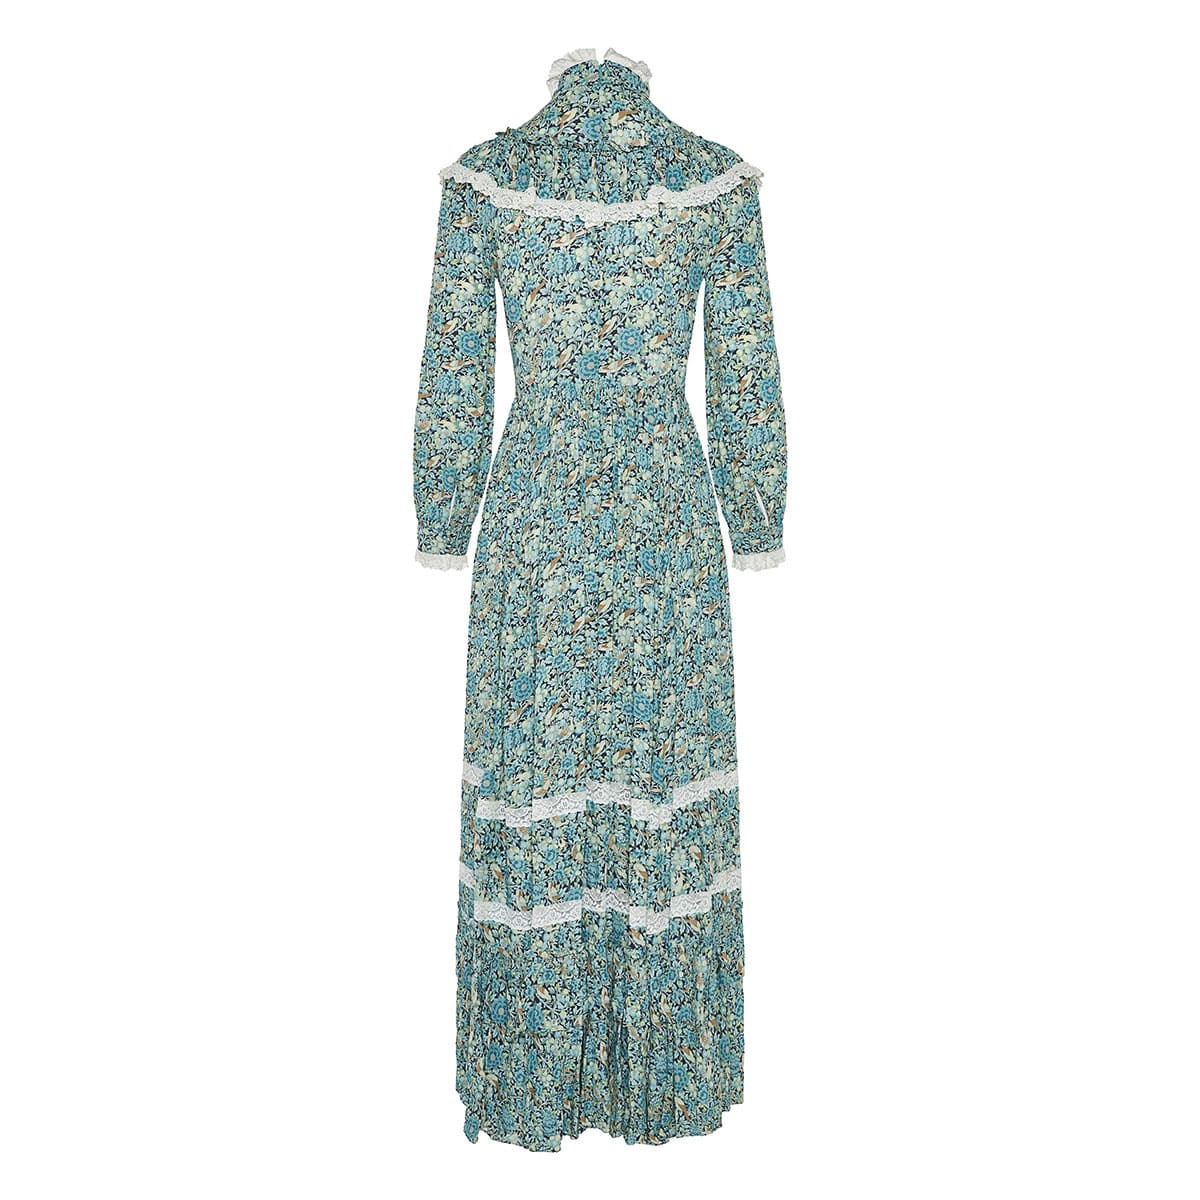 Liberty London long floral dress